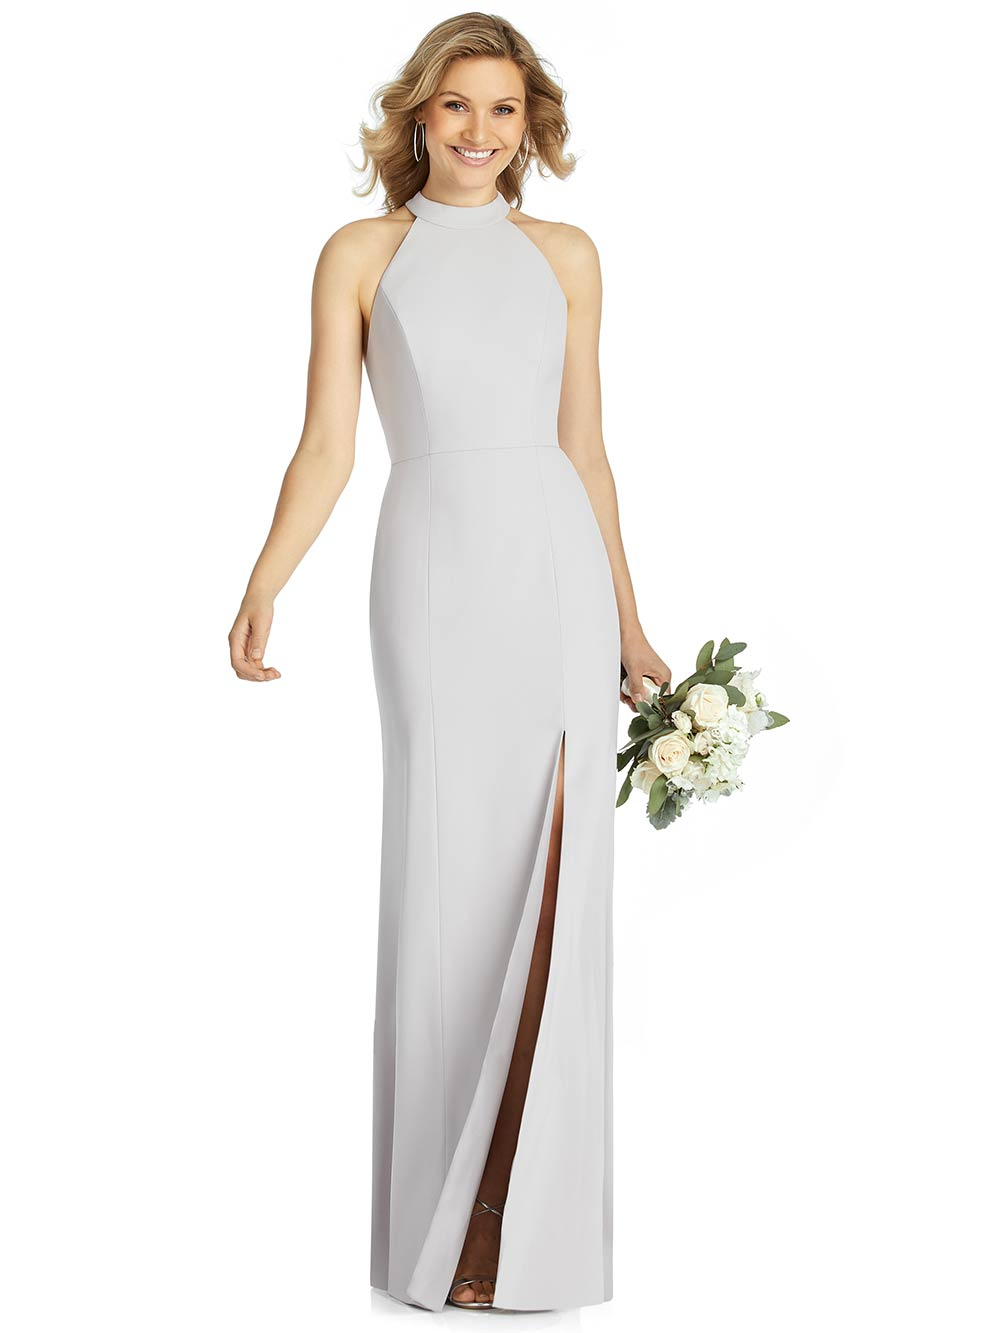 bridesmaid-dresses-dessy-27135